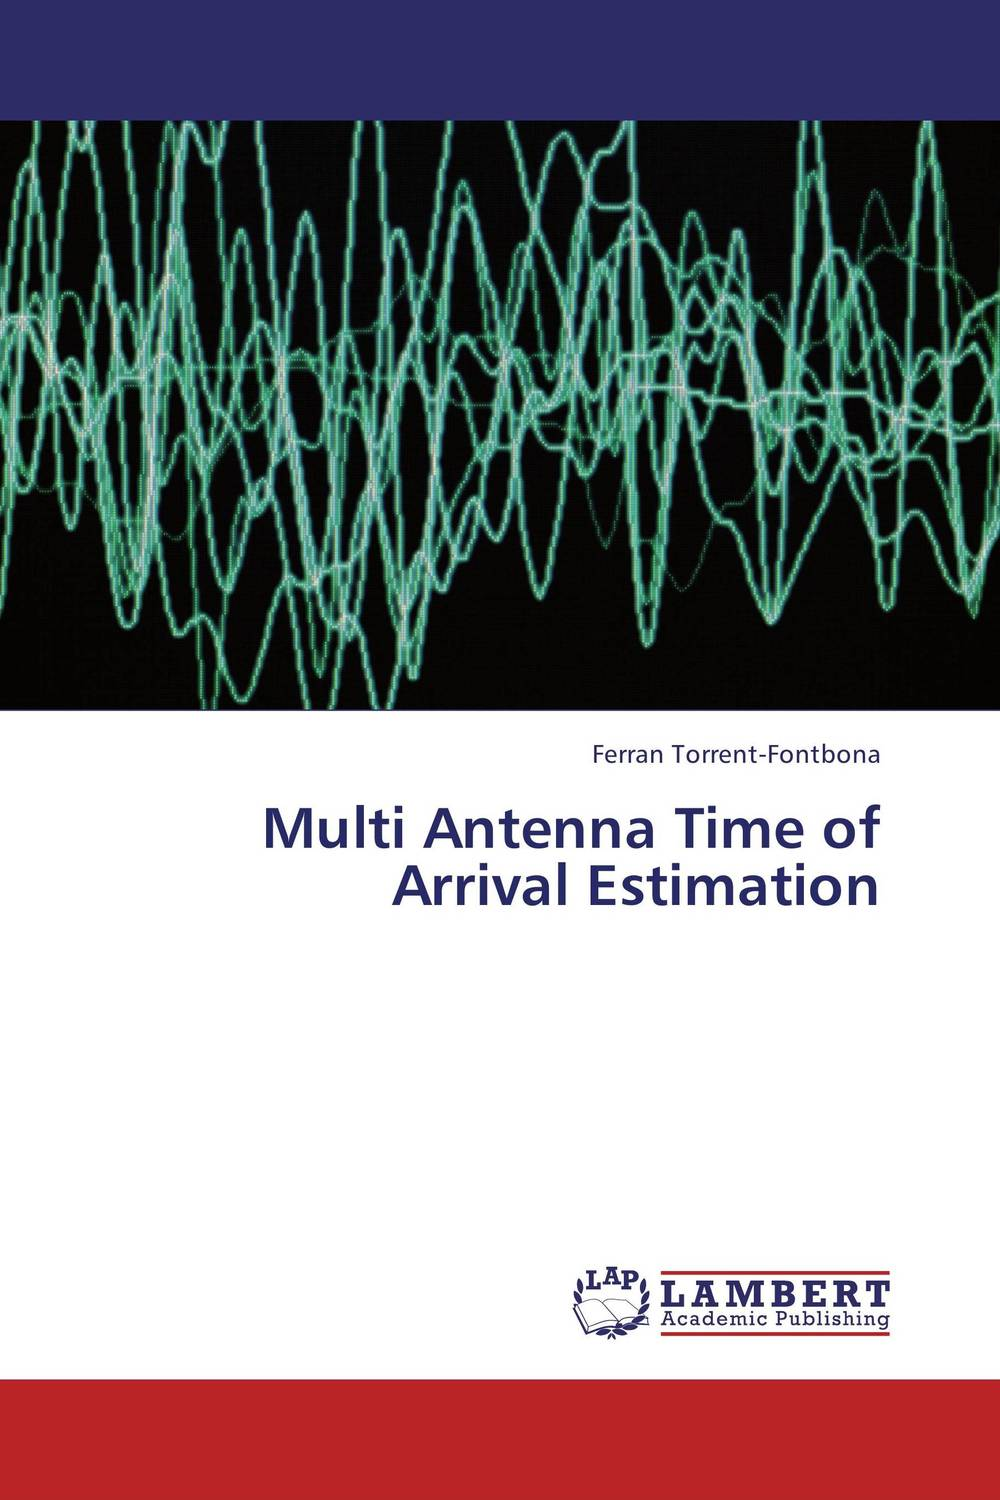 Multi Antenna Time of Arrival Estimation belousov a security features of banknotes and other documents methods of authentication manual денежные билеты бланки ценных бумаг и документов